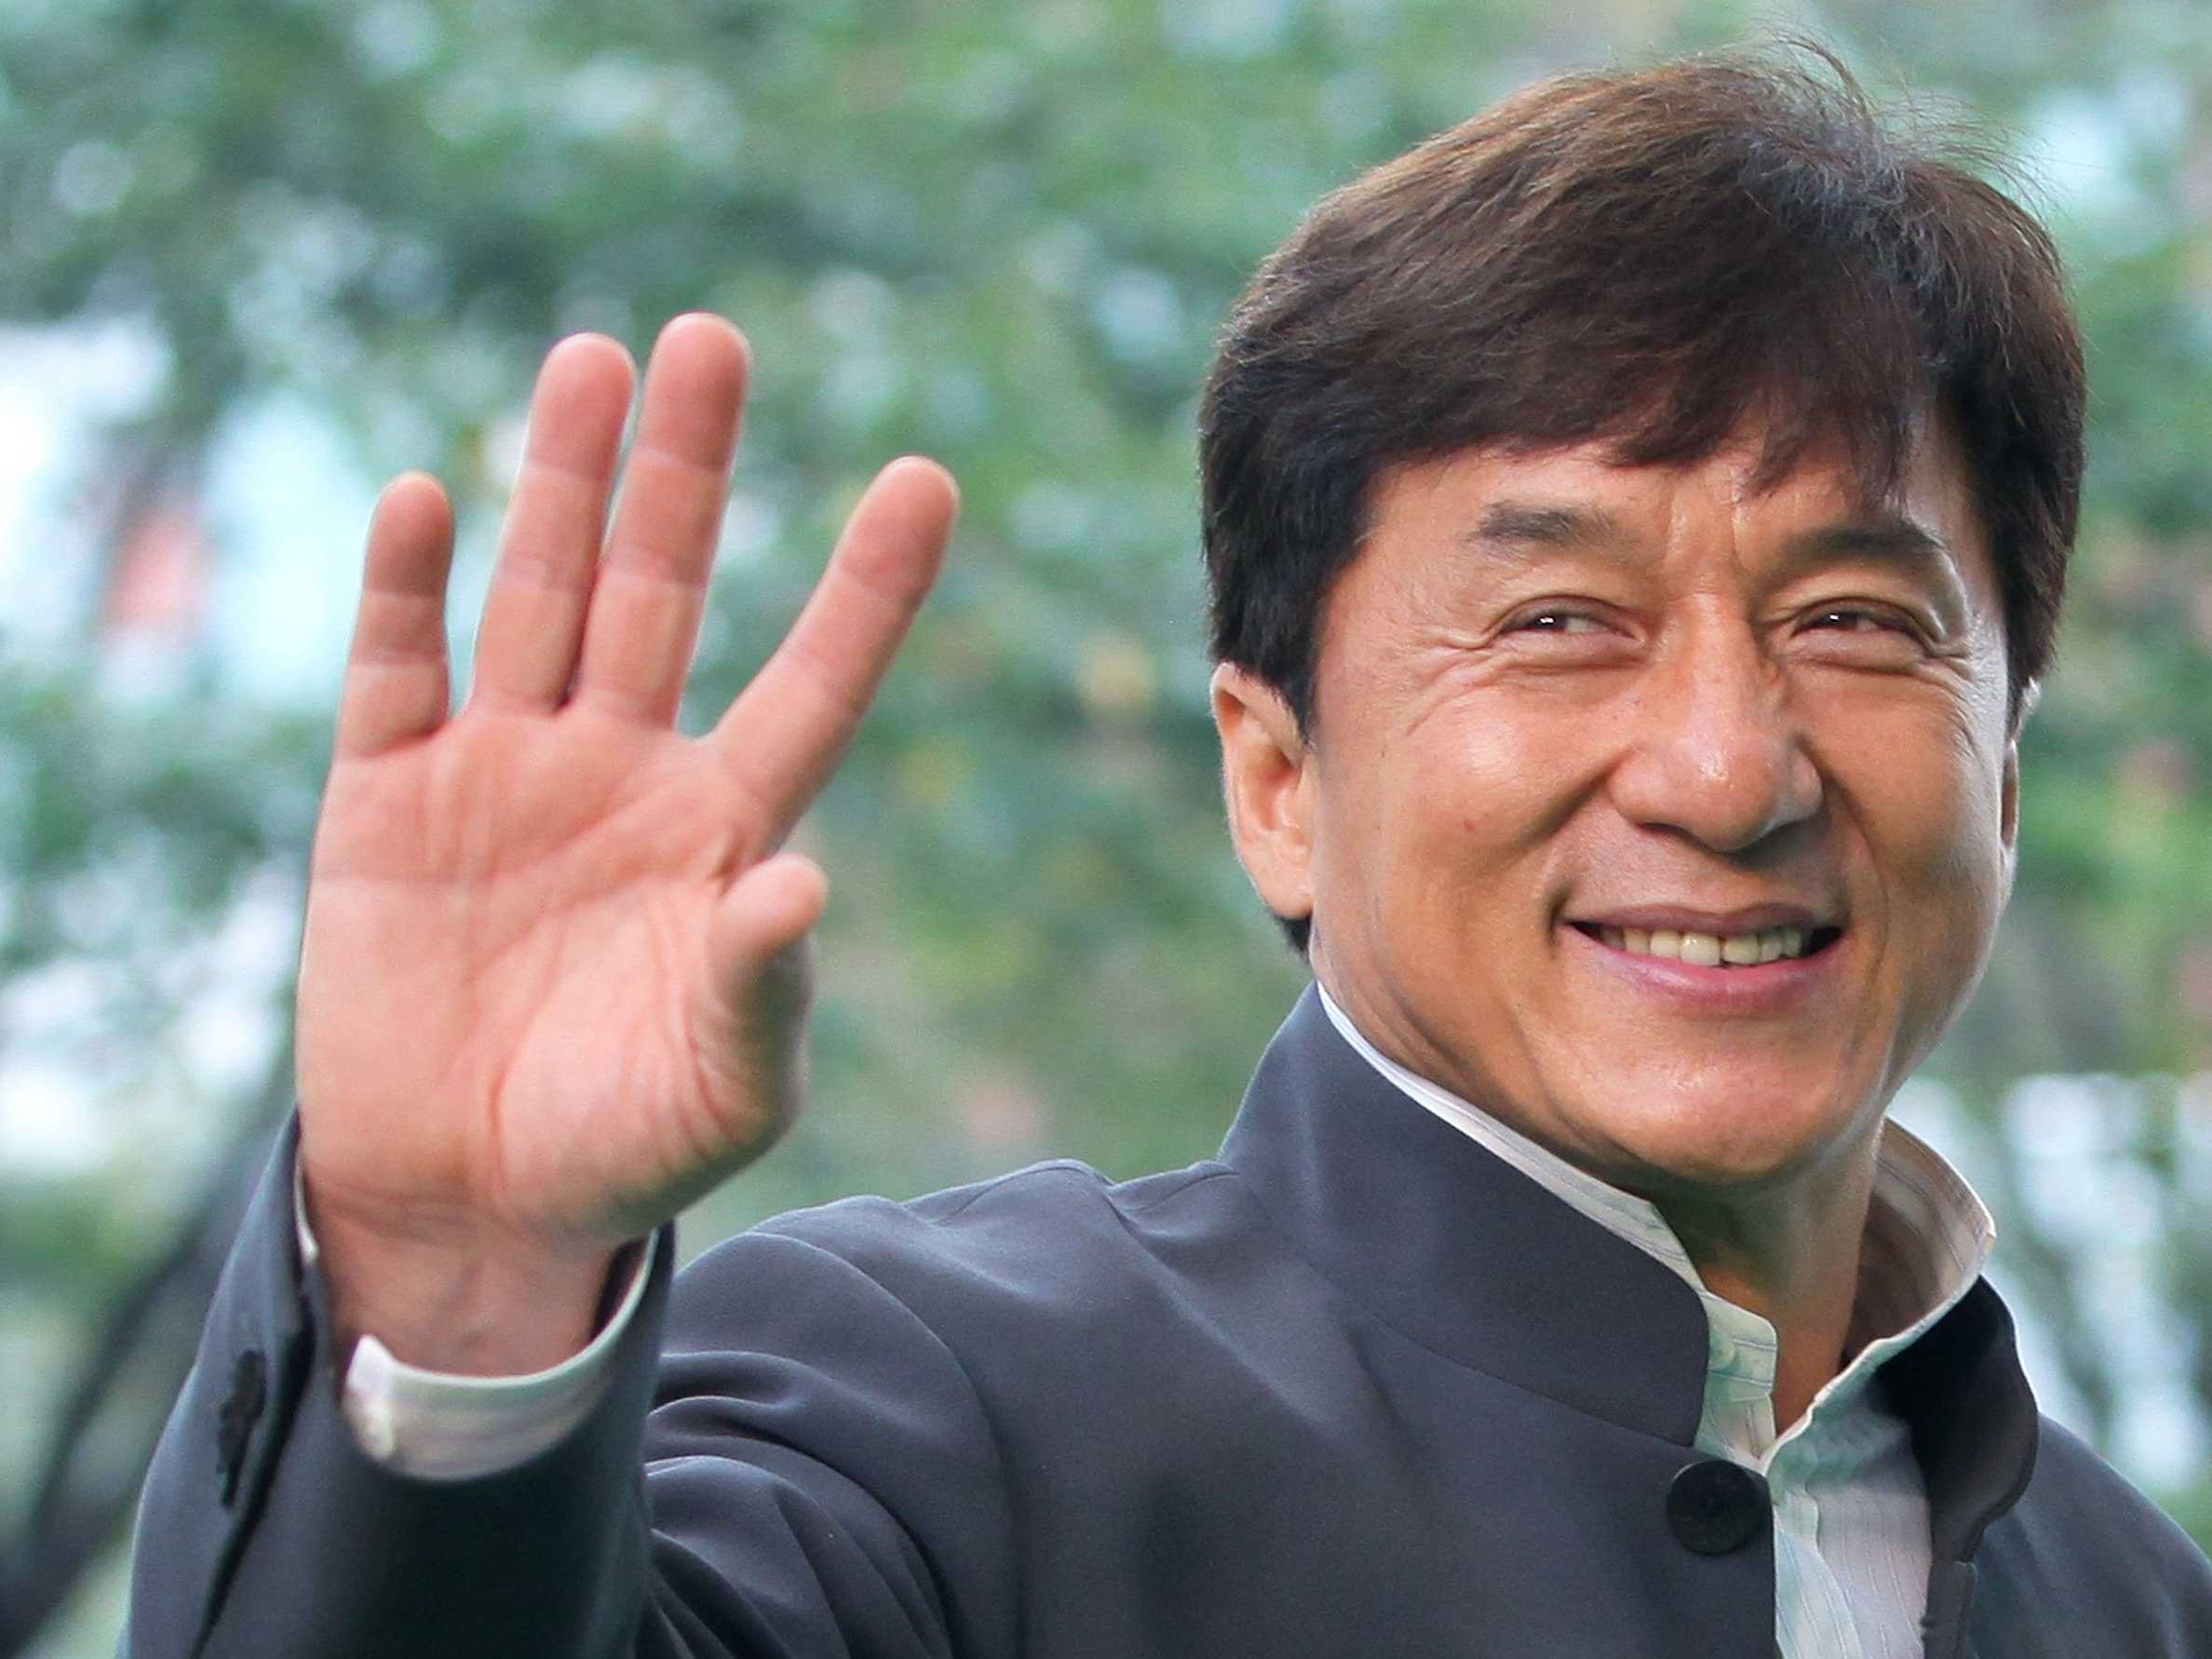 jackie-chan-would-really-like-to-see-some-countries-have-a-disaster.jpg